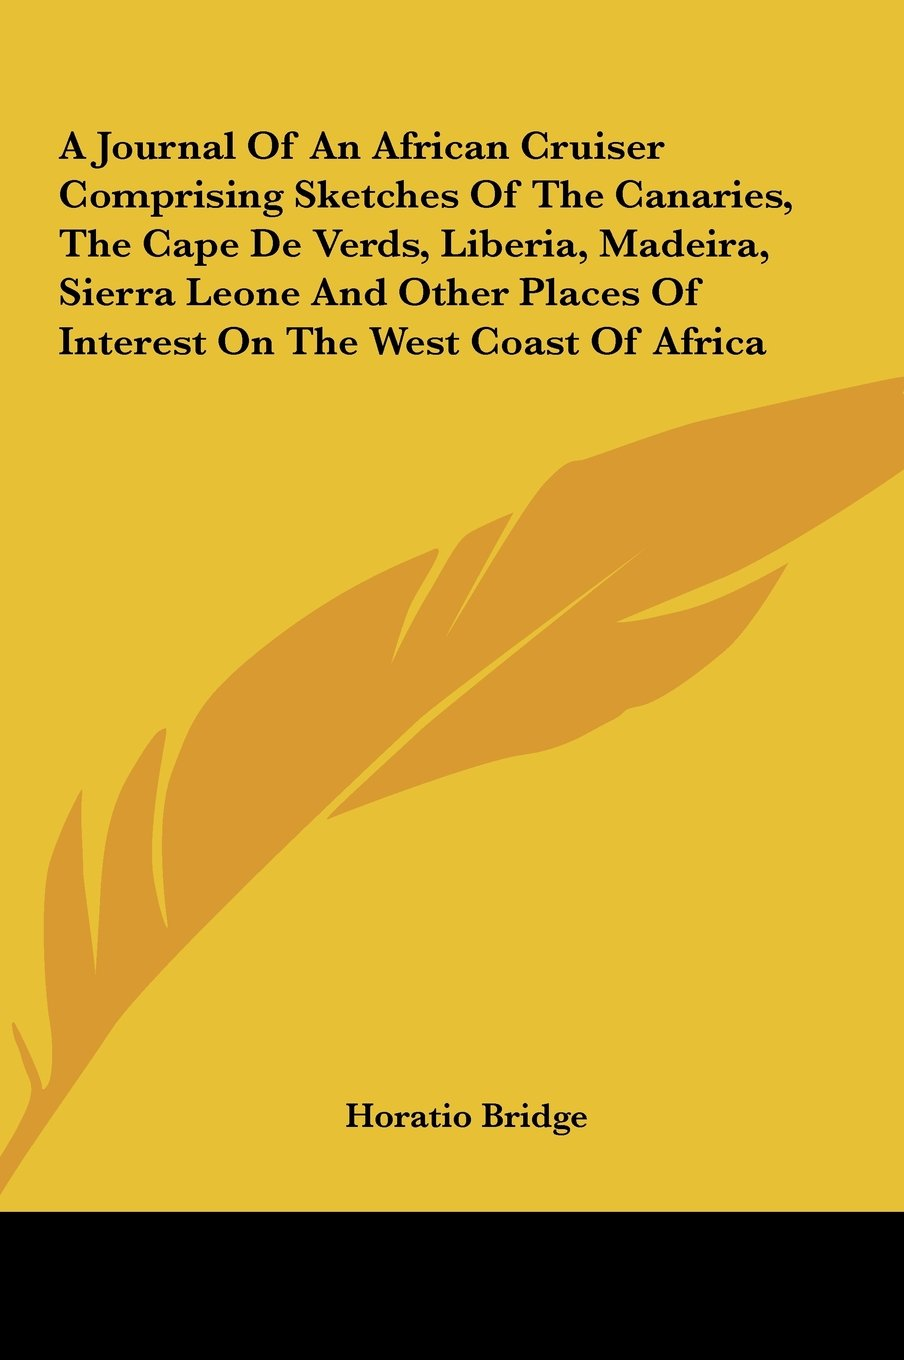 Download A Journal of an African Cruiser Comprising Sketches of the Canaries, the Cape de Verds, Liberia, Madeira, Sierra Leone and Other Places of Interest pdf epub